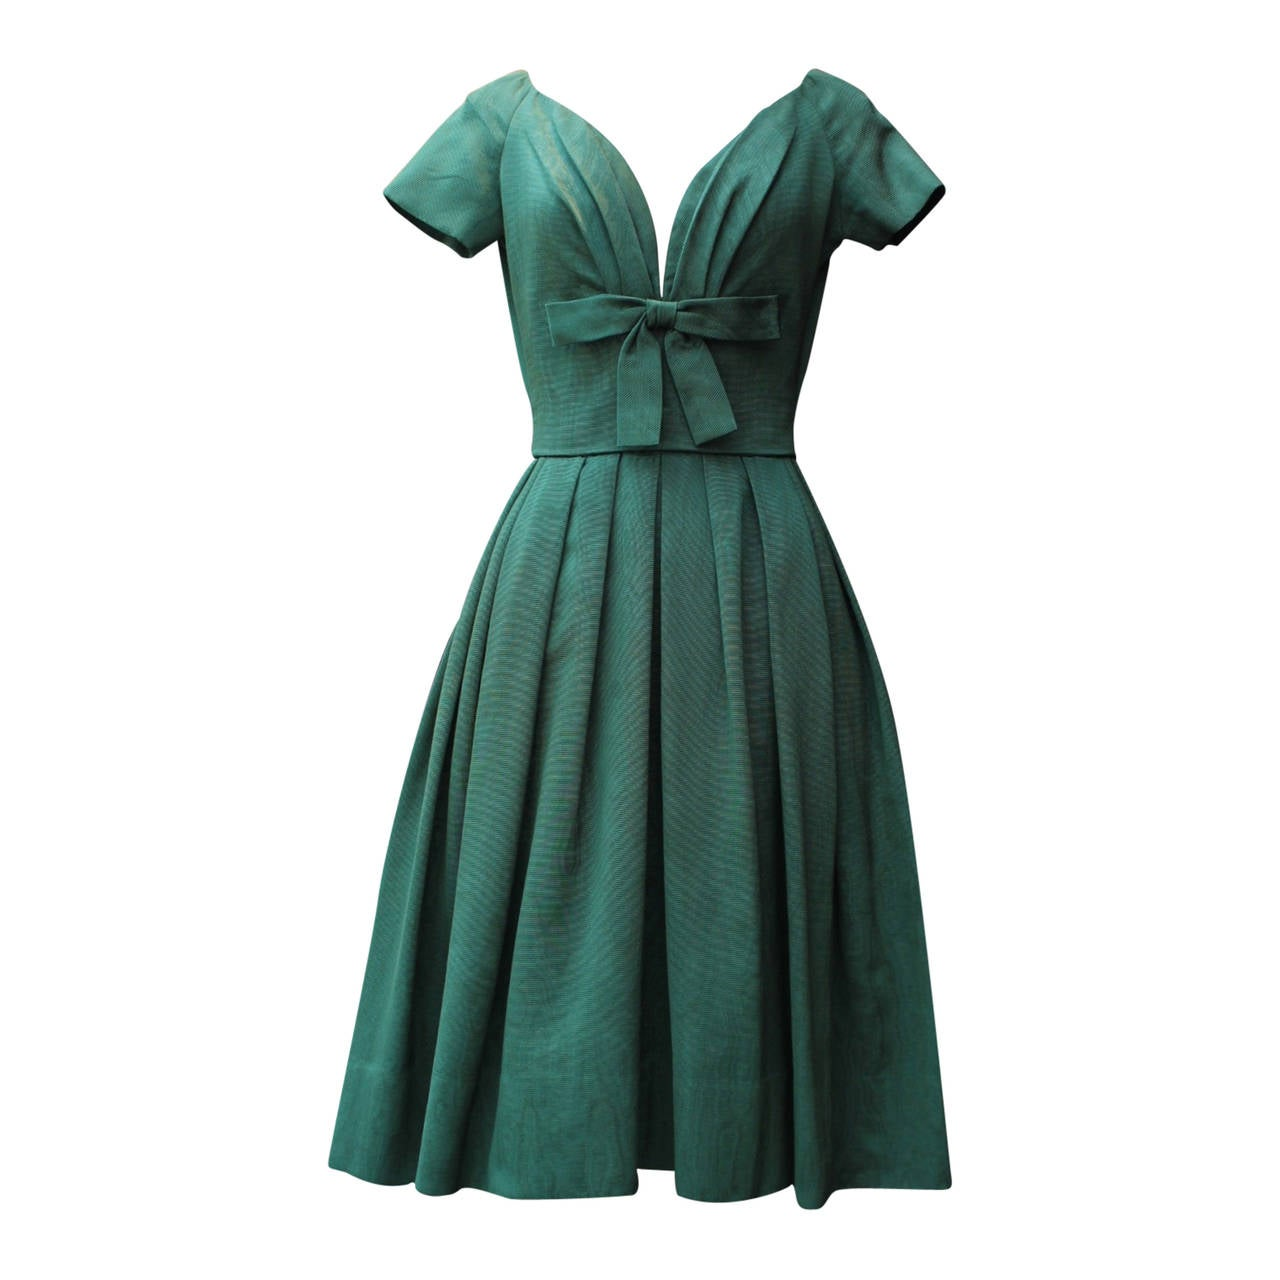 1950s Christian Dior Boutique Green Cocktail Dress For Sale